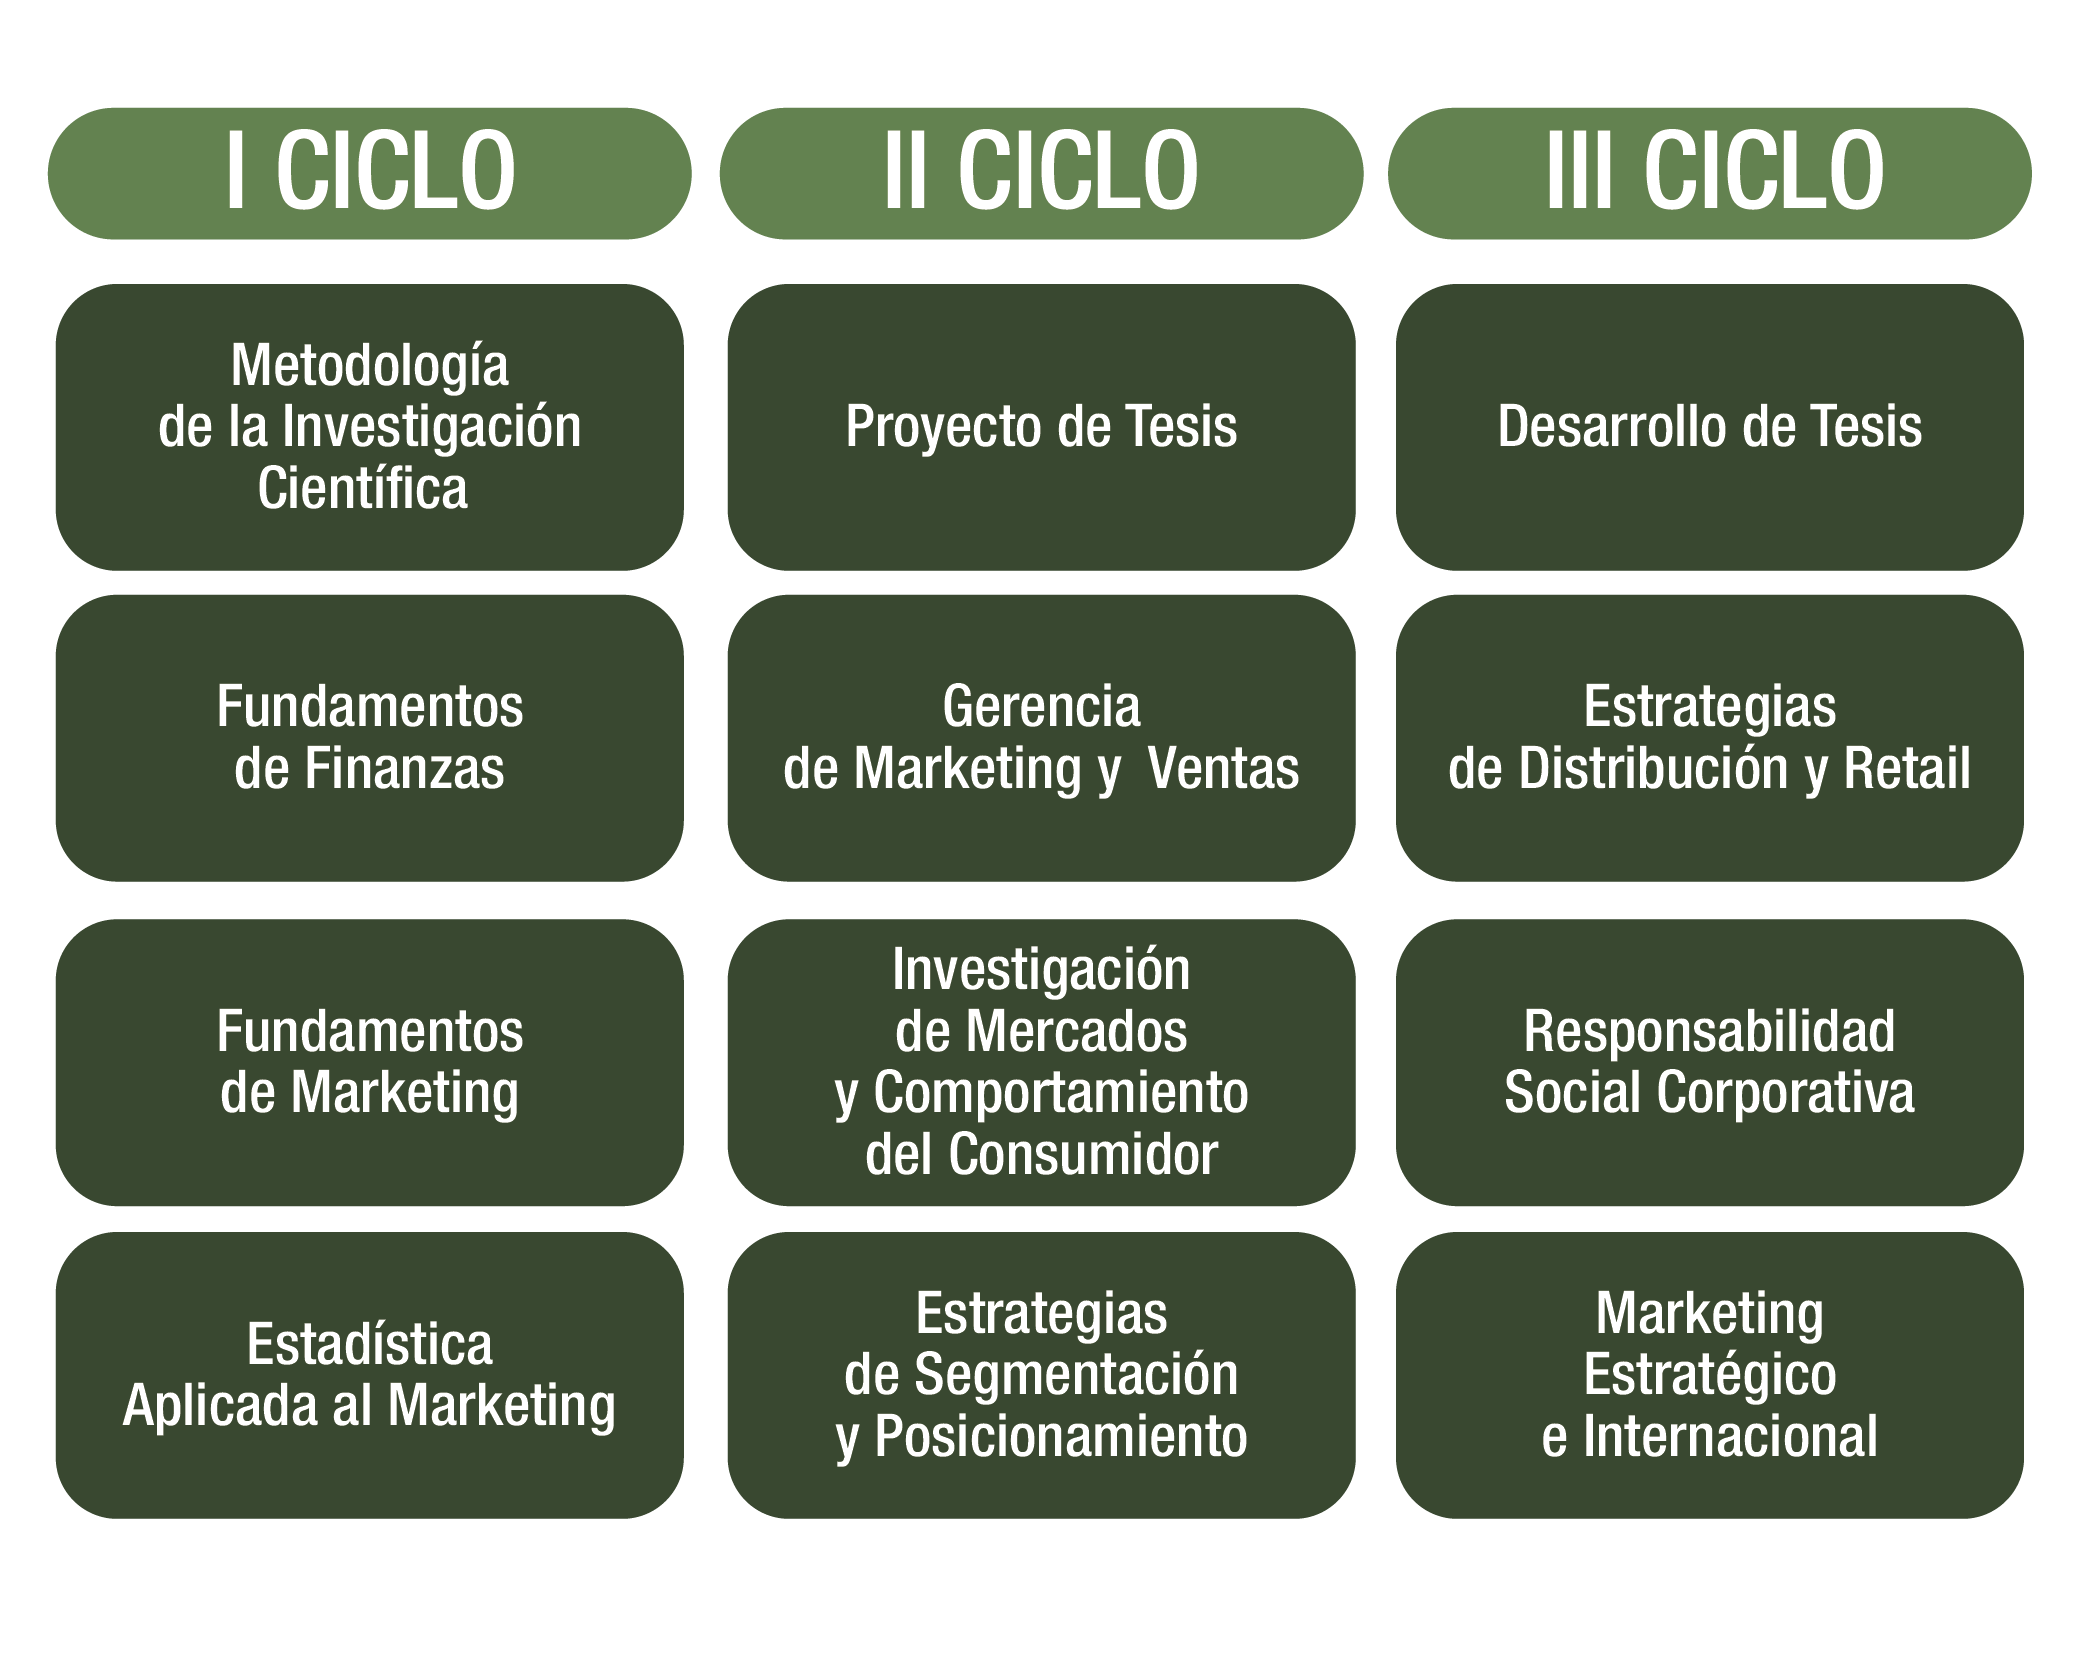 marketing_mesa-de-trabajo-1-copia-2